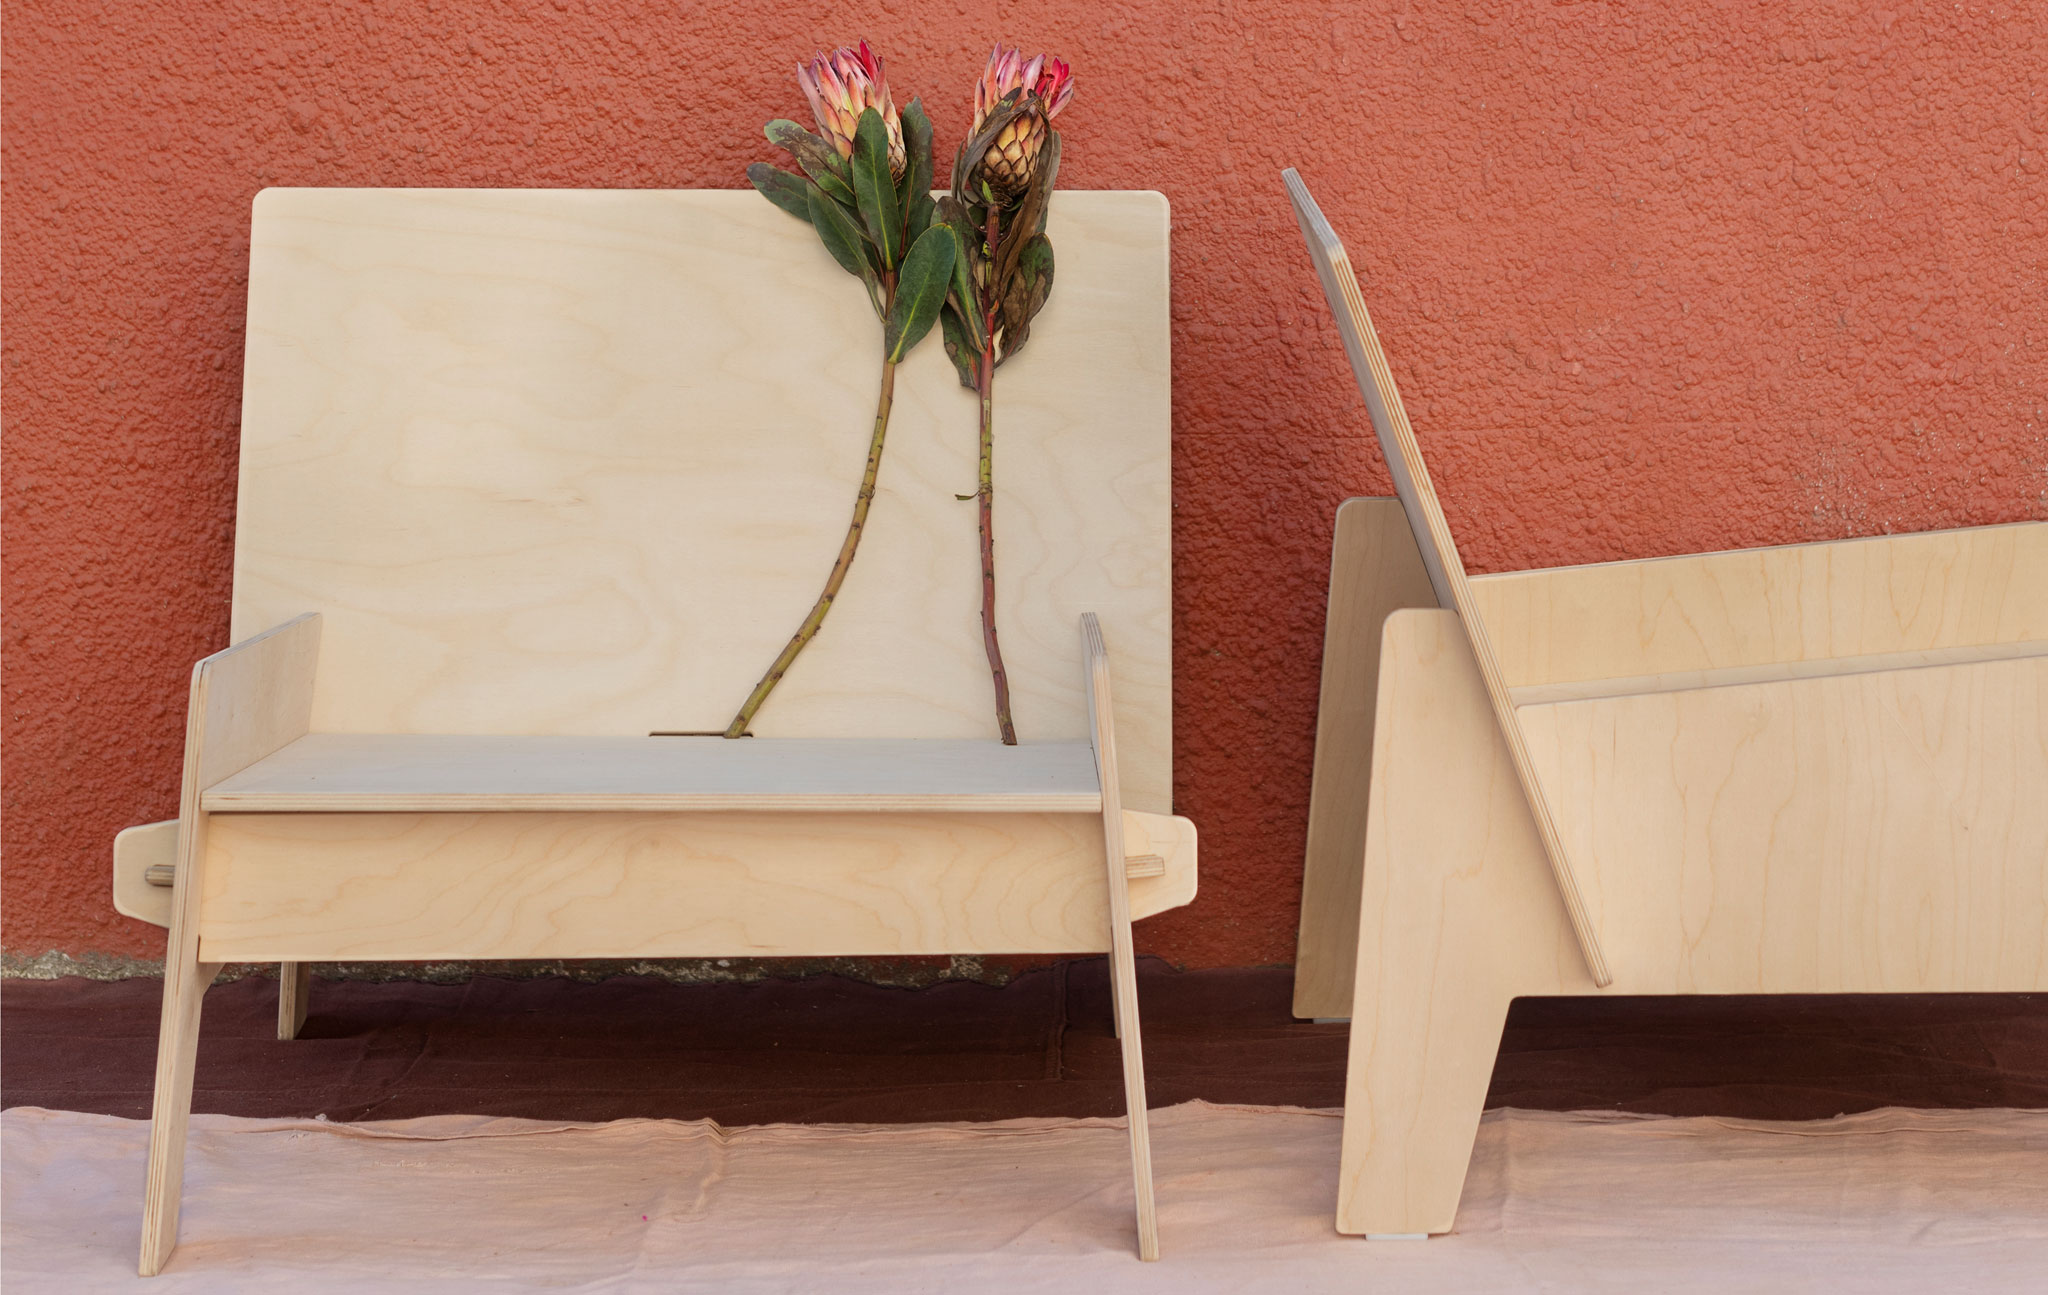 Two low, wide chairs, placed perpendicular from each other, wholly made from fitted, flat sheets of plywood.